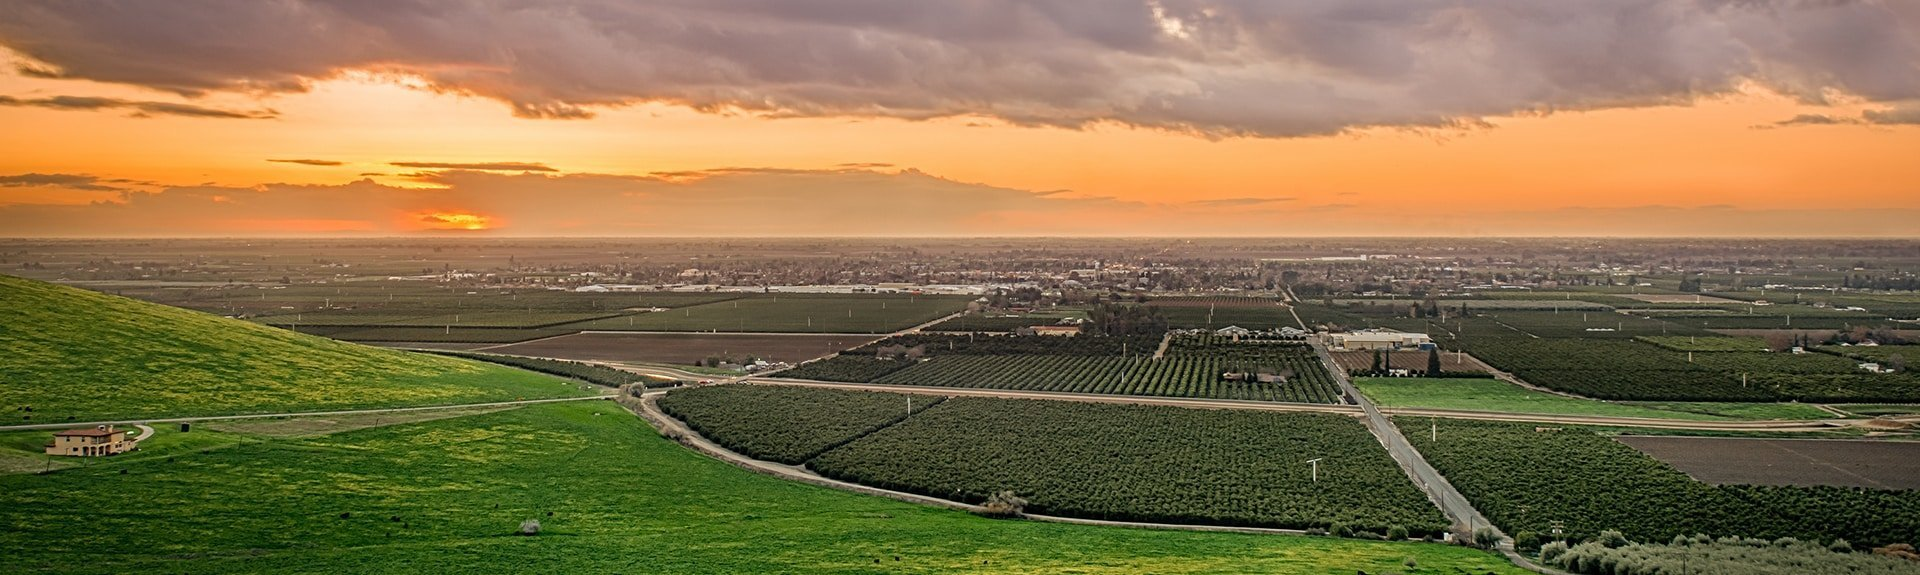 View of California agriculture